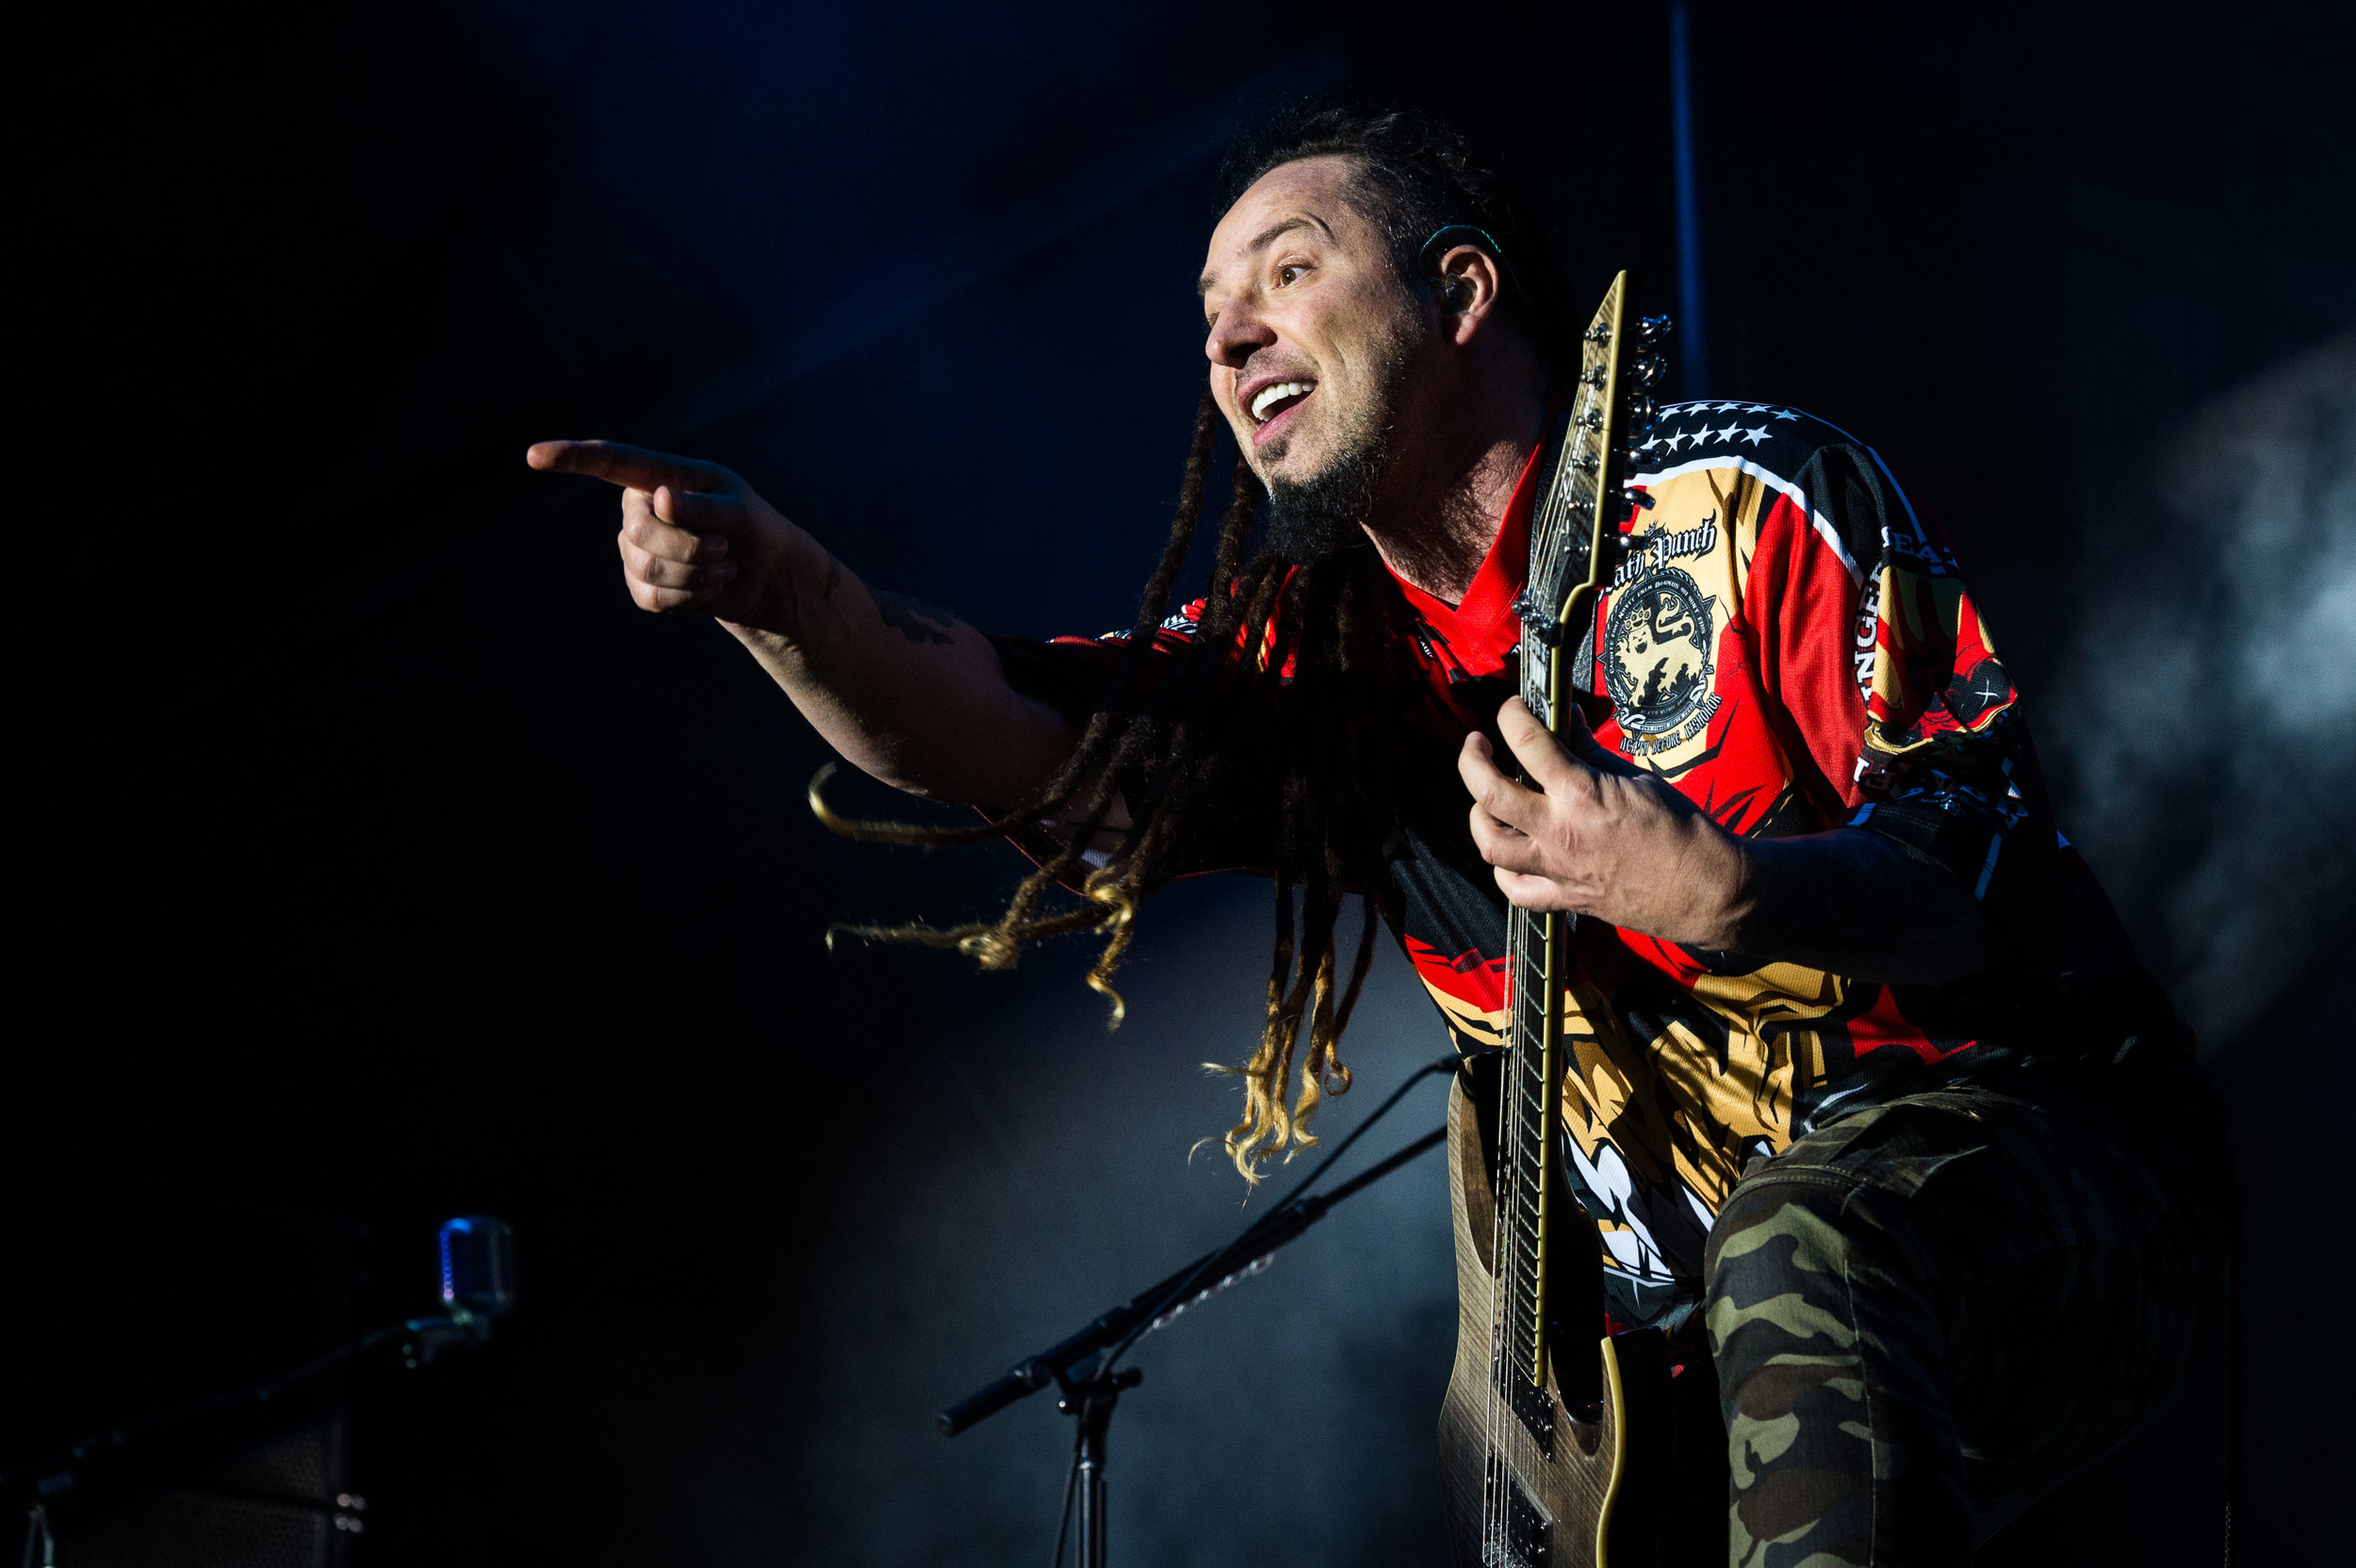 Five Finger Death Punch Sep 30 2017-31.jpg